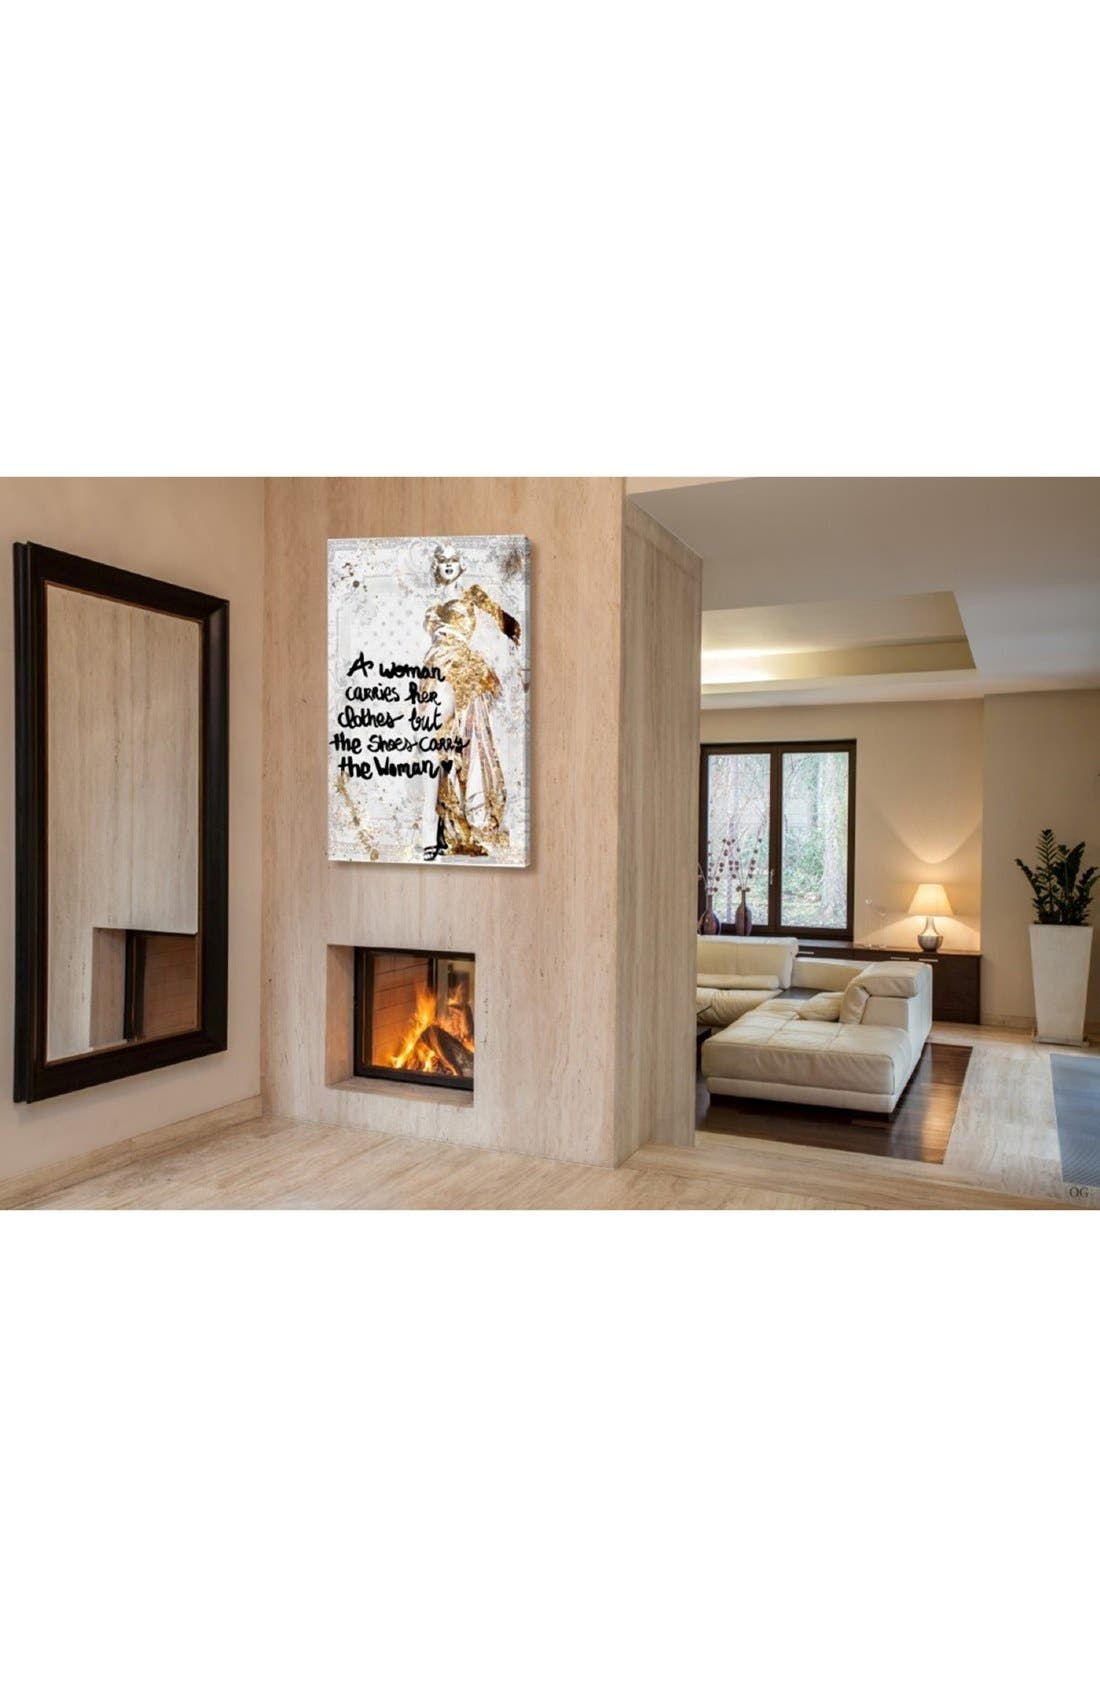 'The Shoes Carry the Woman' Canvas Wall Art,                             Alternate thumbnail 2, color,                             040